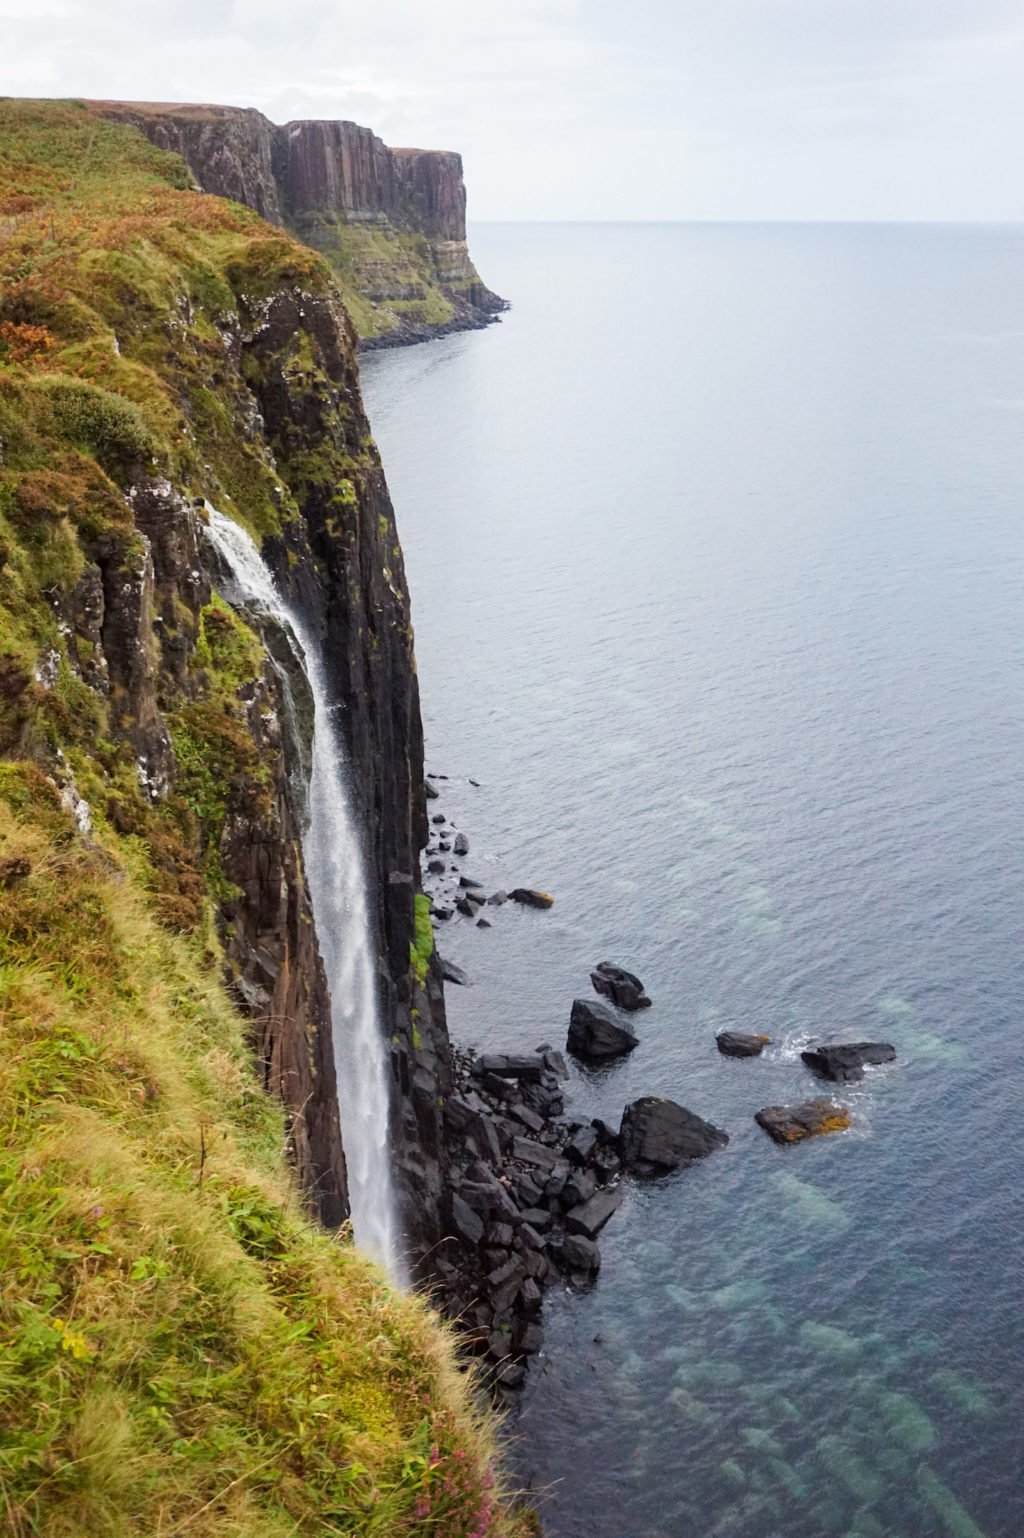 Mealt Falls and Kilt Rock • 3-Day Tour to Skye, The Highlands, and Loch Ness | The Wanderful Me